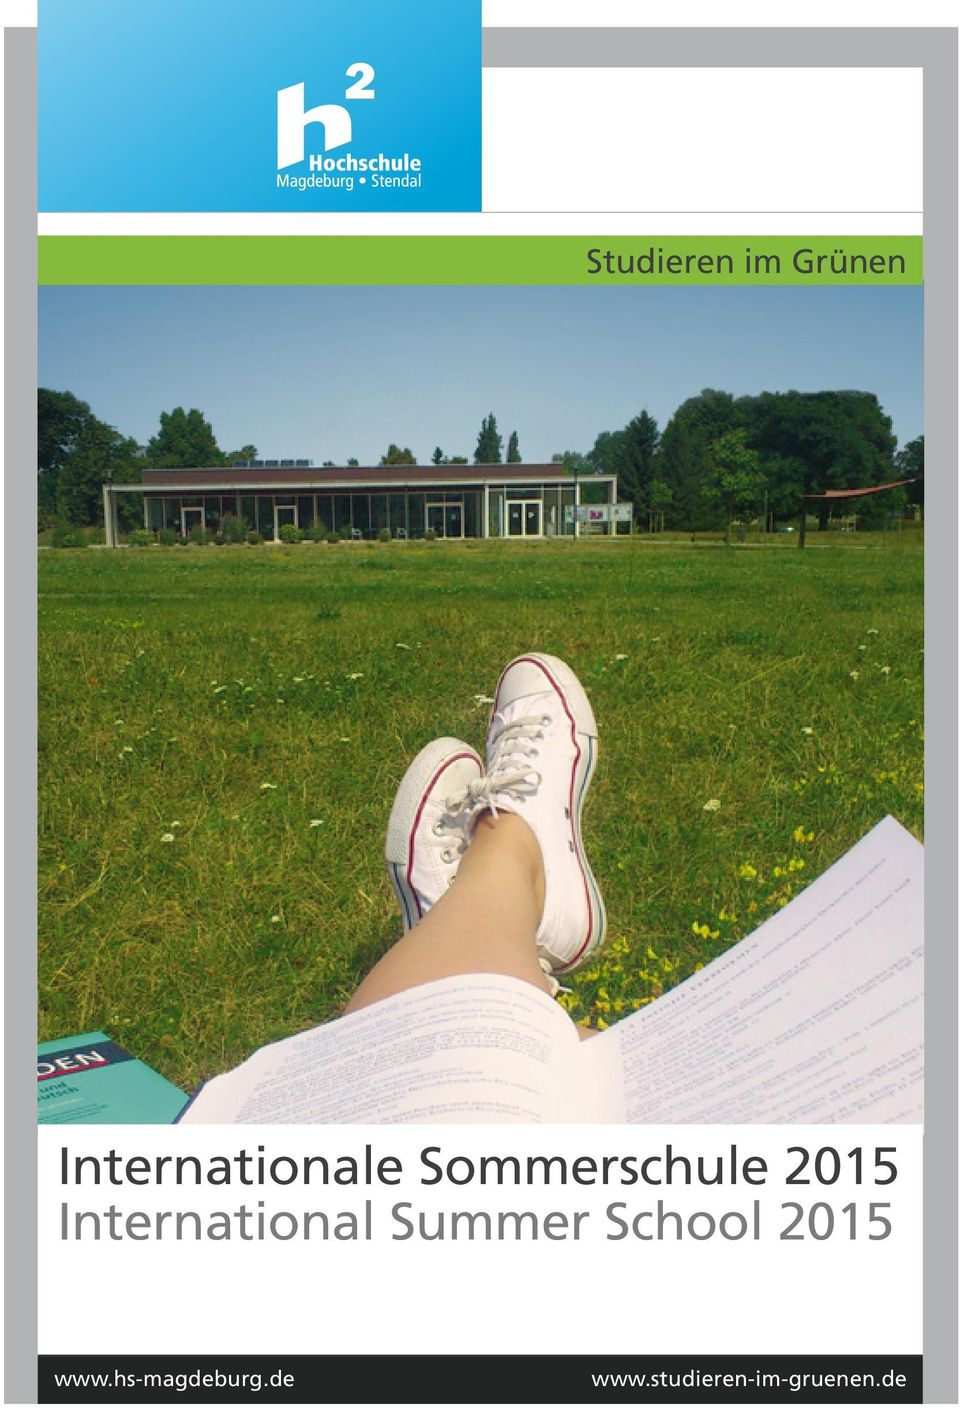 International Summer School 2015